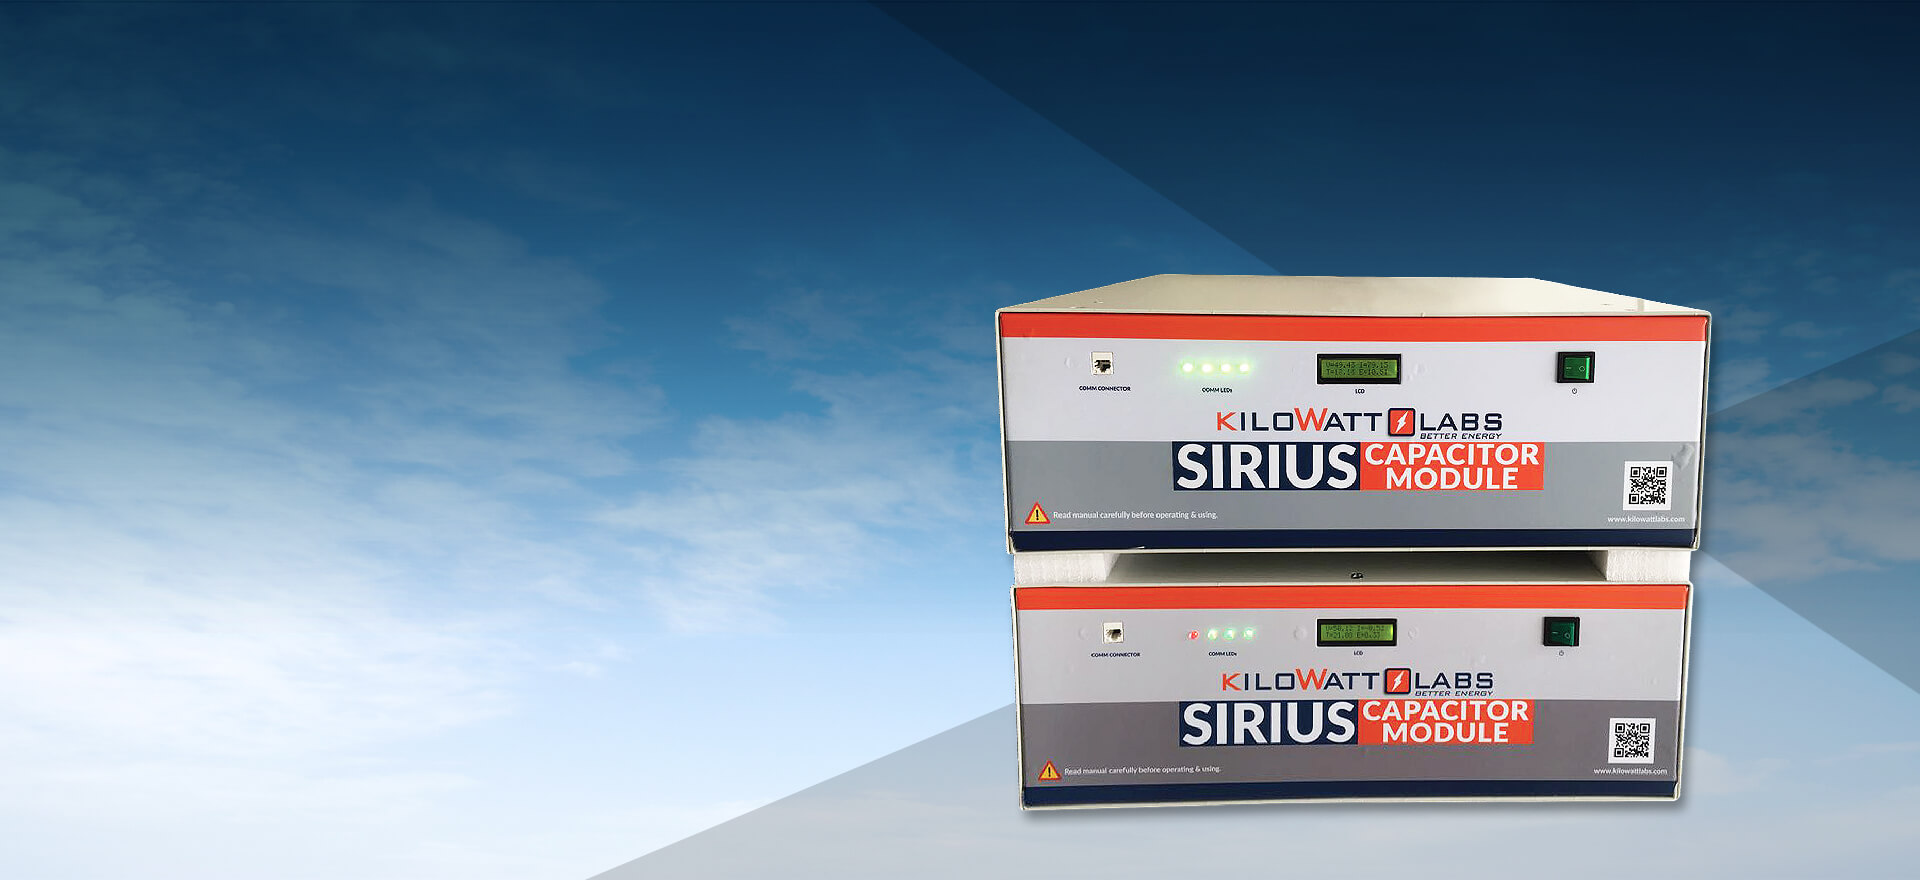 STORAGE - SIRIUS SUPERCAPACITOR • New Earth Energy